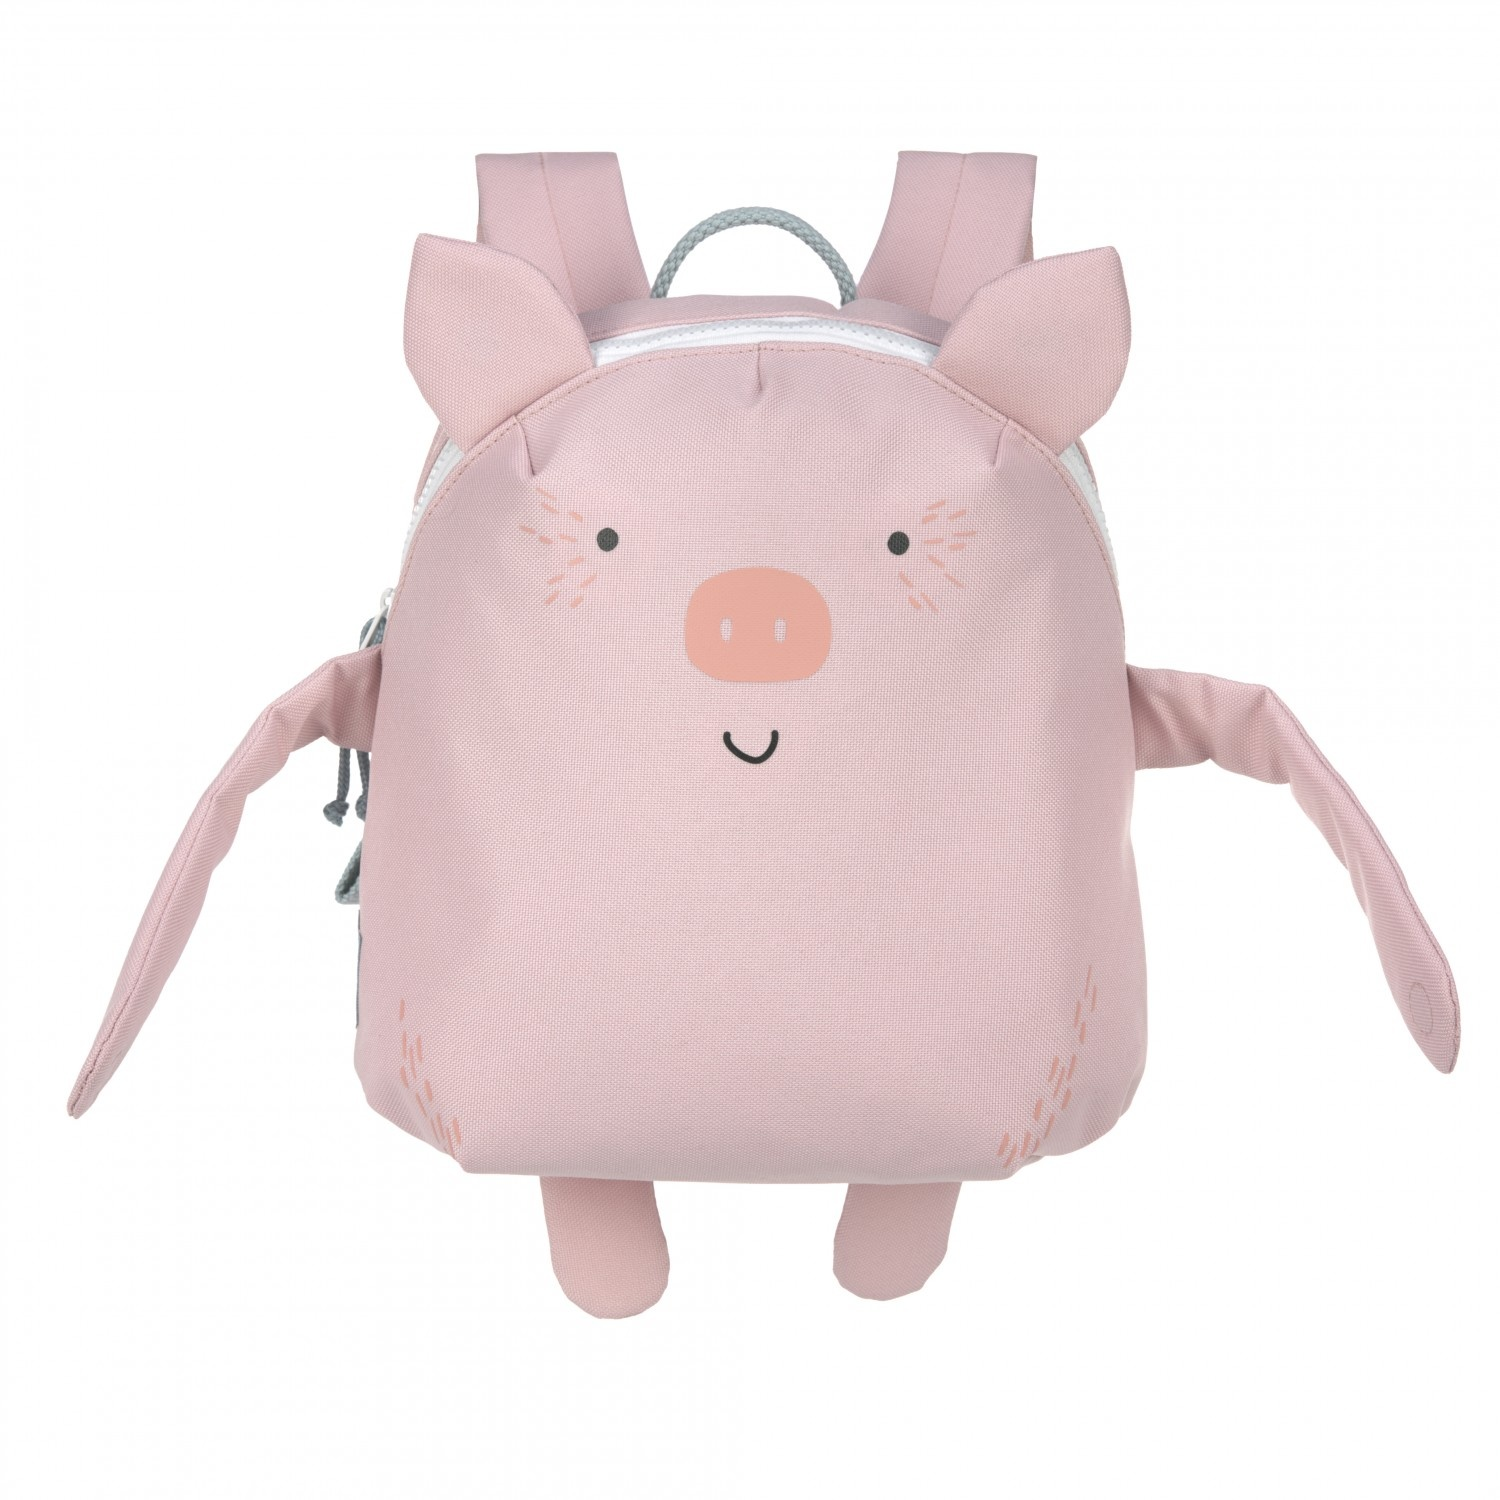 Lässig Lässig Backpack / Rugzak About Friends Bo Pig